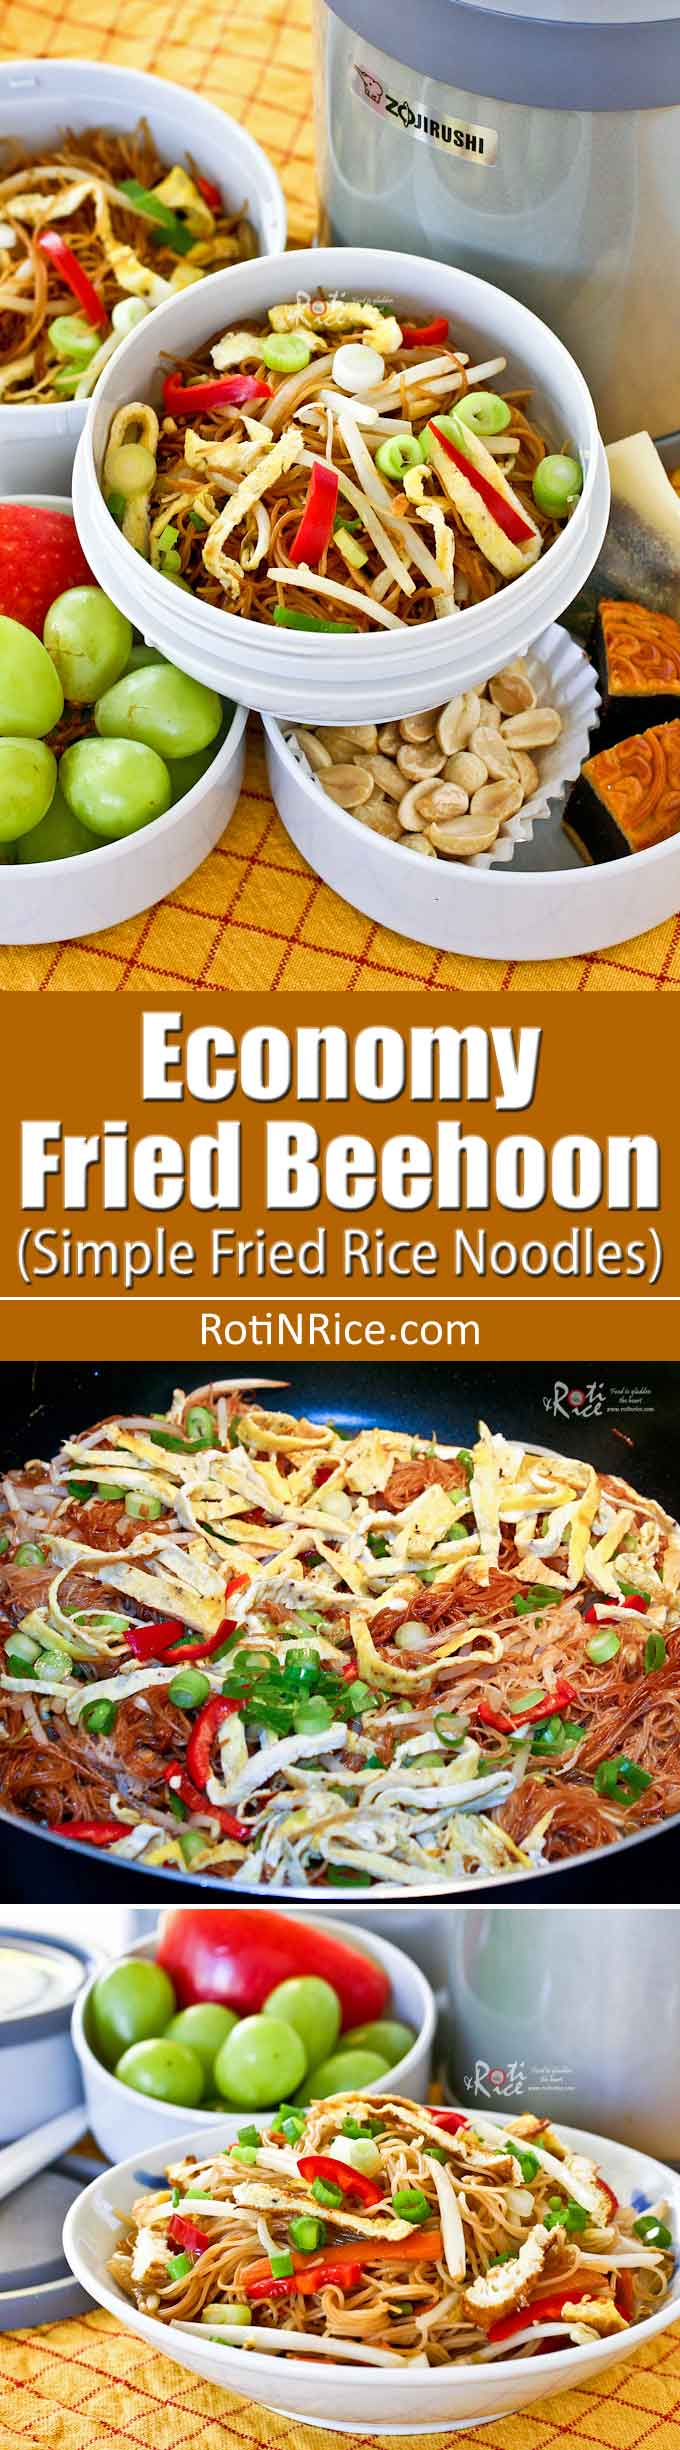 Economy Fried Beehoon is a simple vegetarian rice noodles stir fry. Can be served at room temperature for breakfast or lunch. Works well in the lunch box. | RotiNRice.com